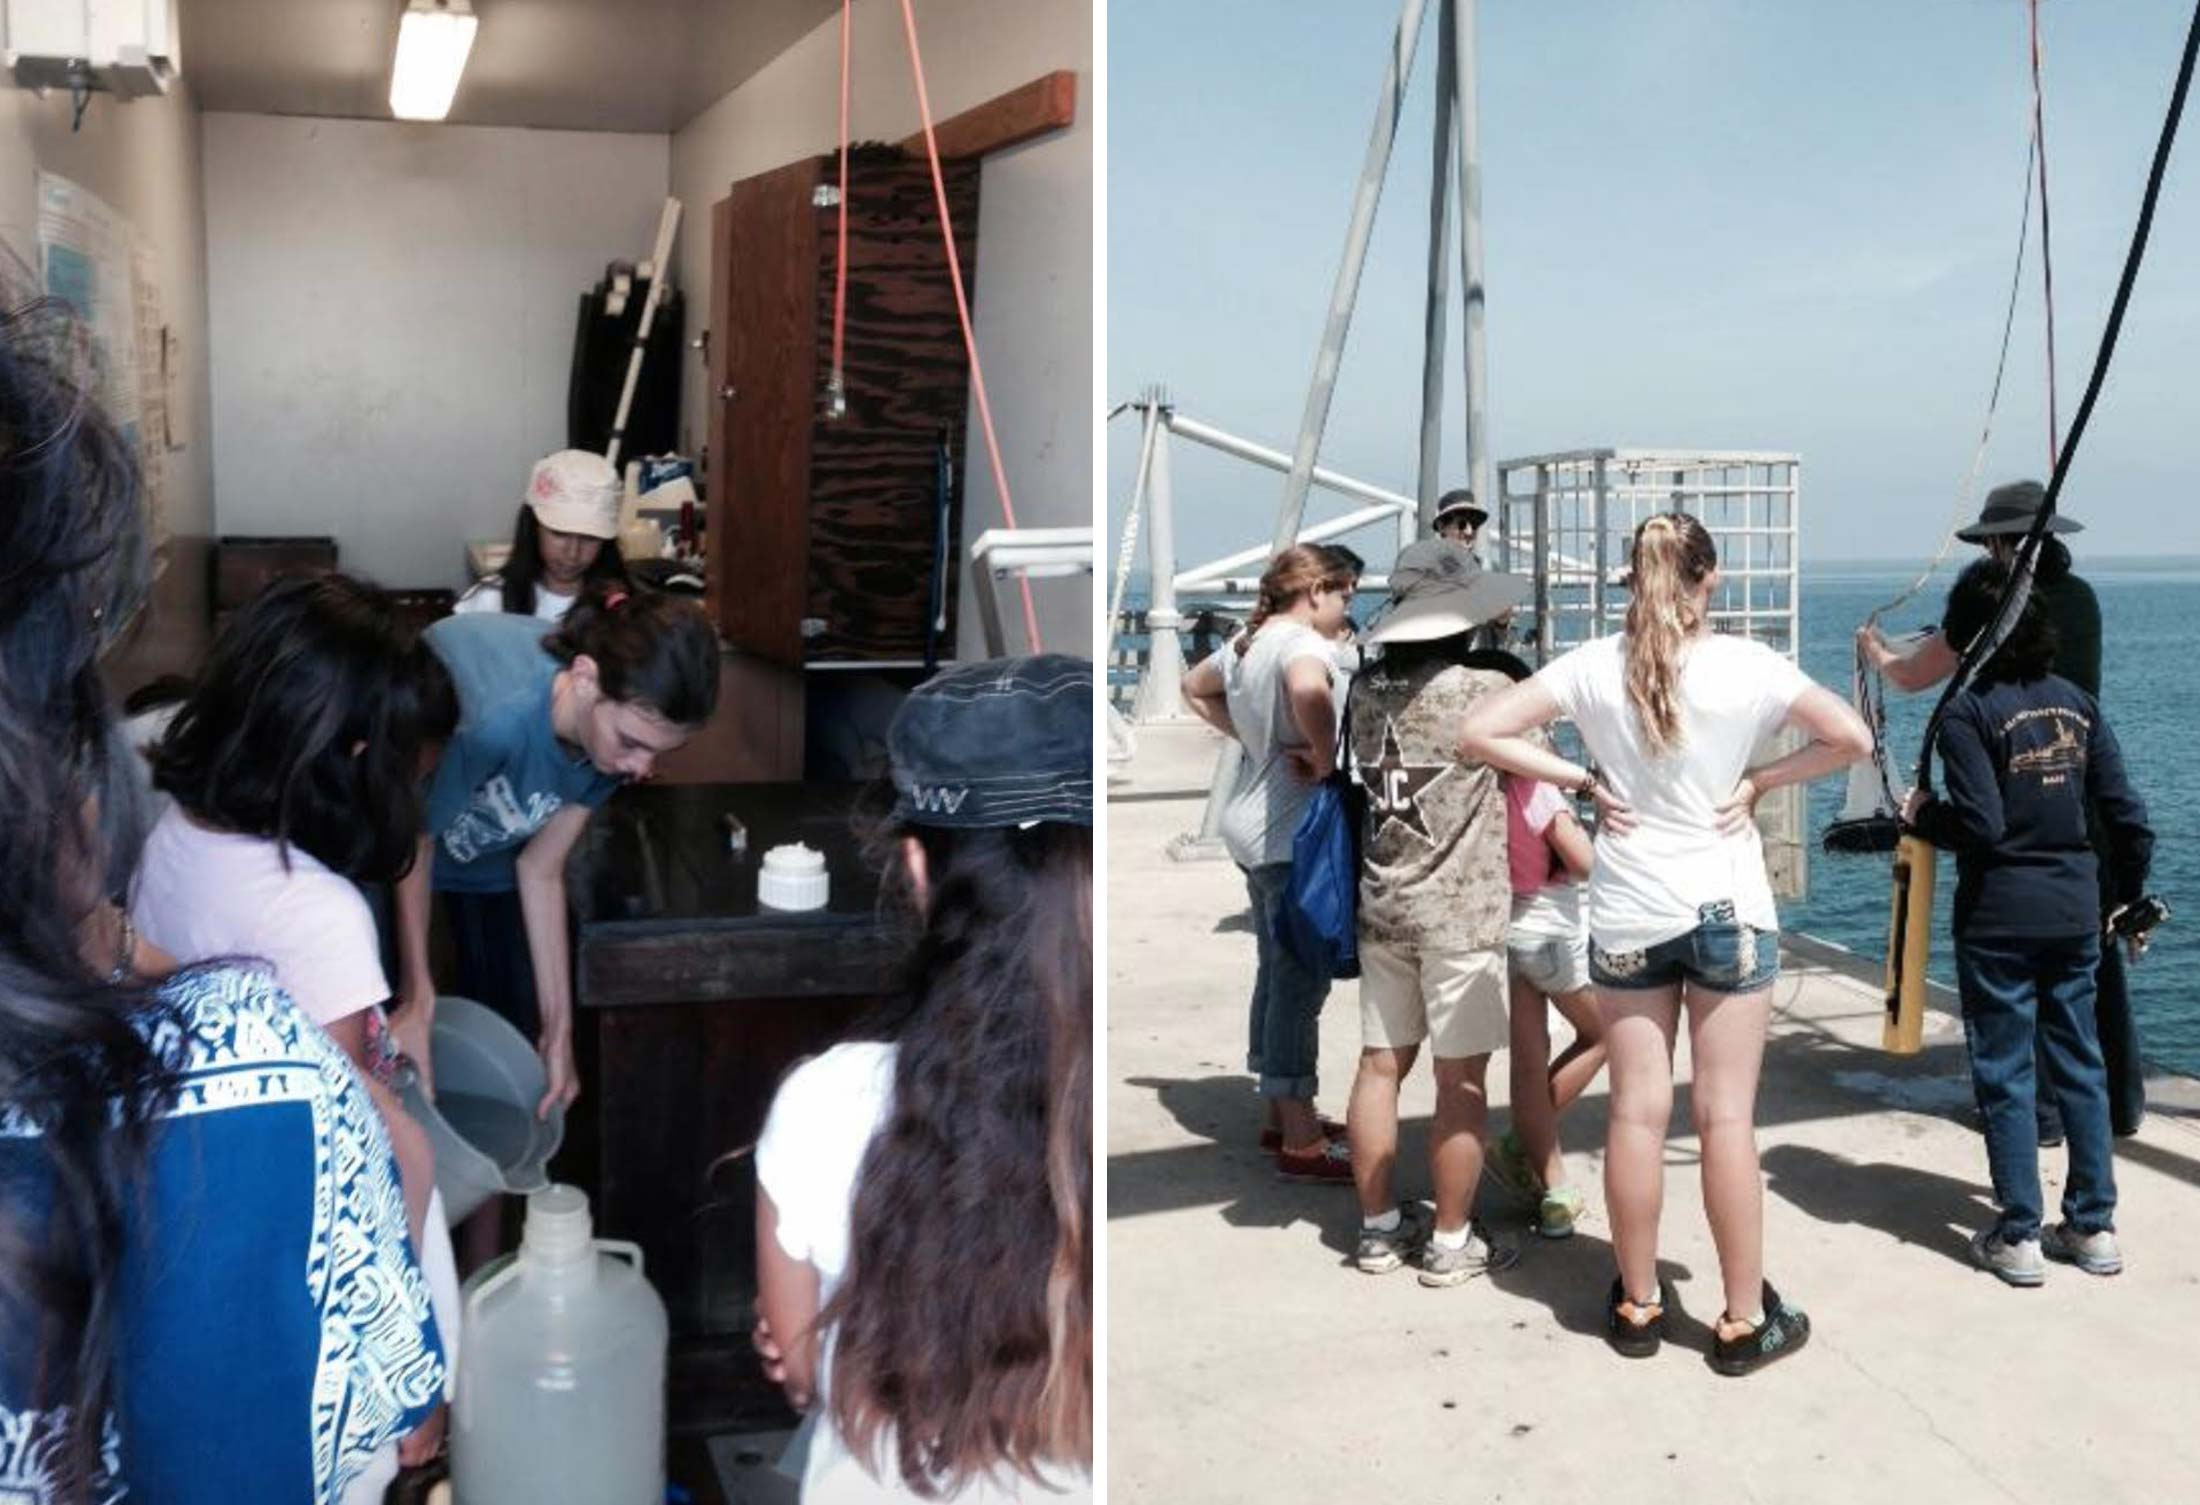 Ocean Sampling Day 2014 with local Girl Scout groups.